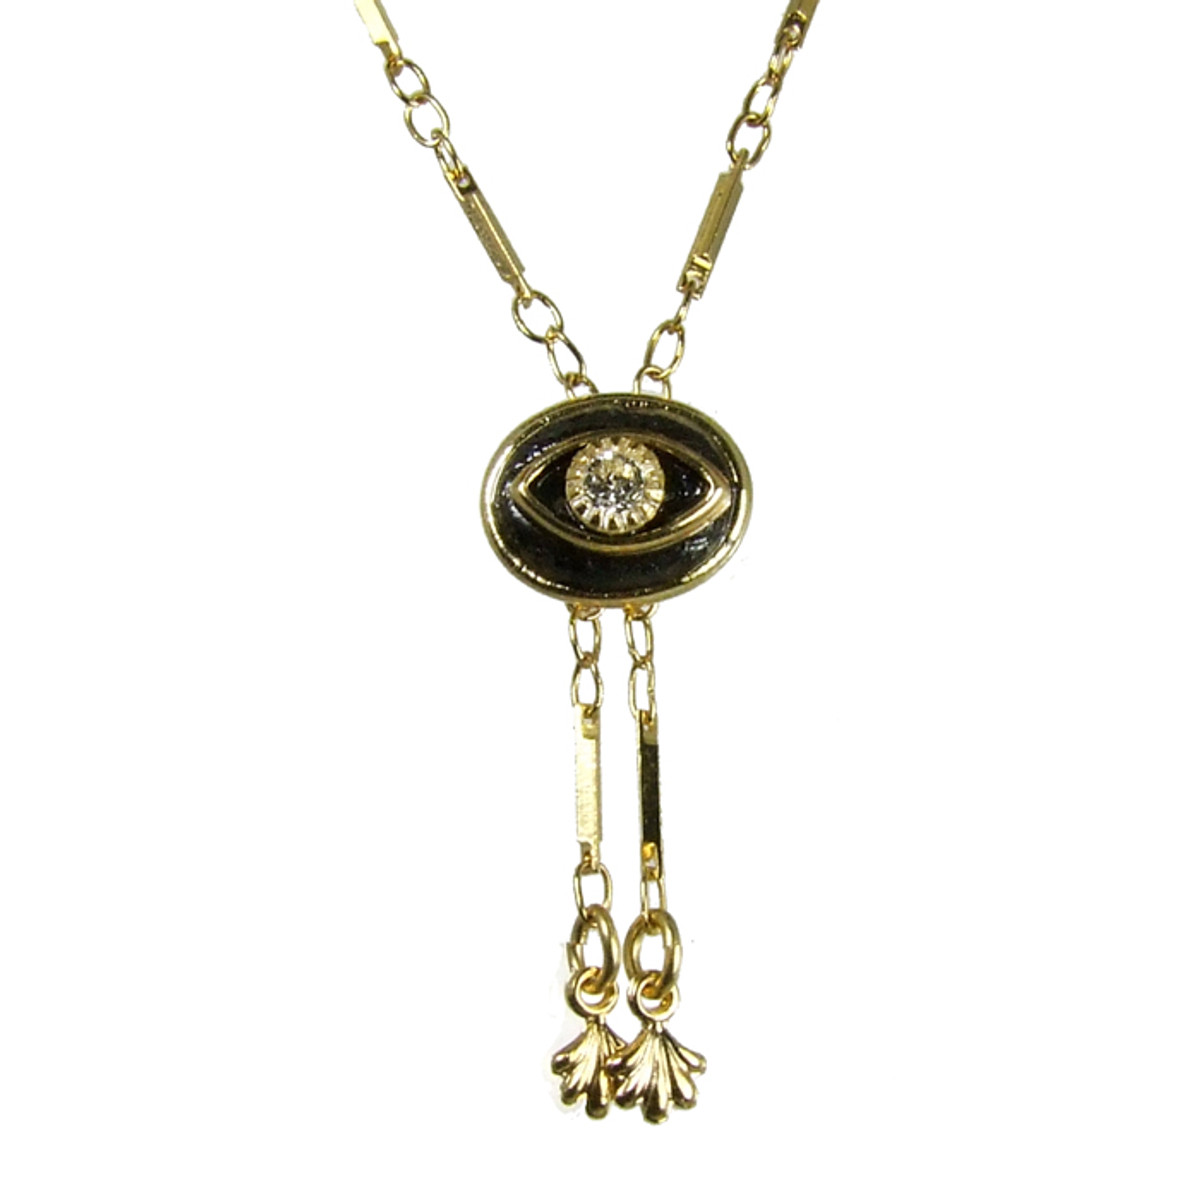 Evil Eye Necklace - Black Oval With Crystal Centered Eye & Double Dangles